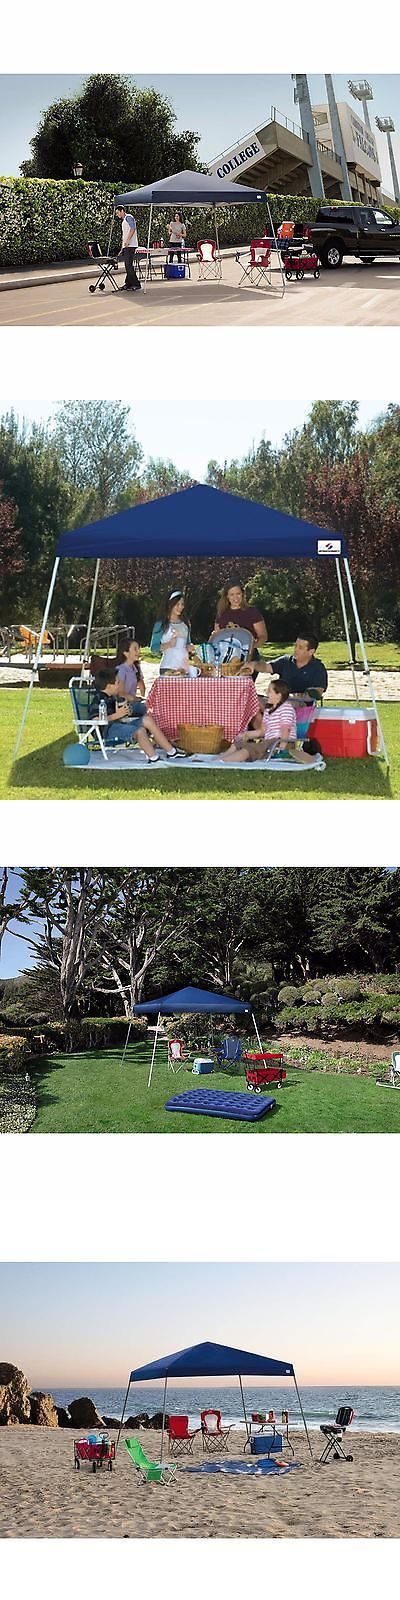 Awnings and Canopies 180992: Instant Canopy Tent 12X12 Outdoor Pop Up Ez Gazebo Patio Beach Sun Shade Camping -> BUY IT NOW ONLY: $59.99 on eBay!